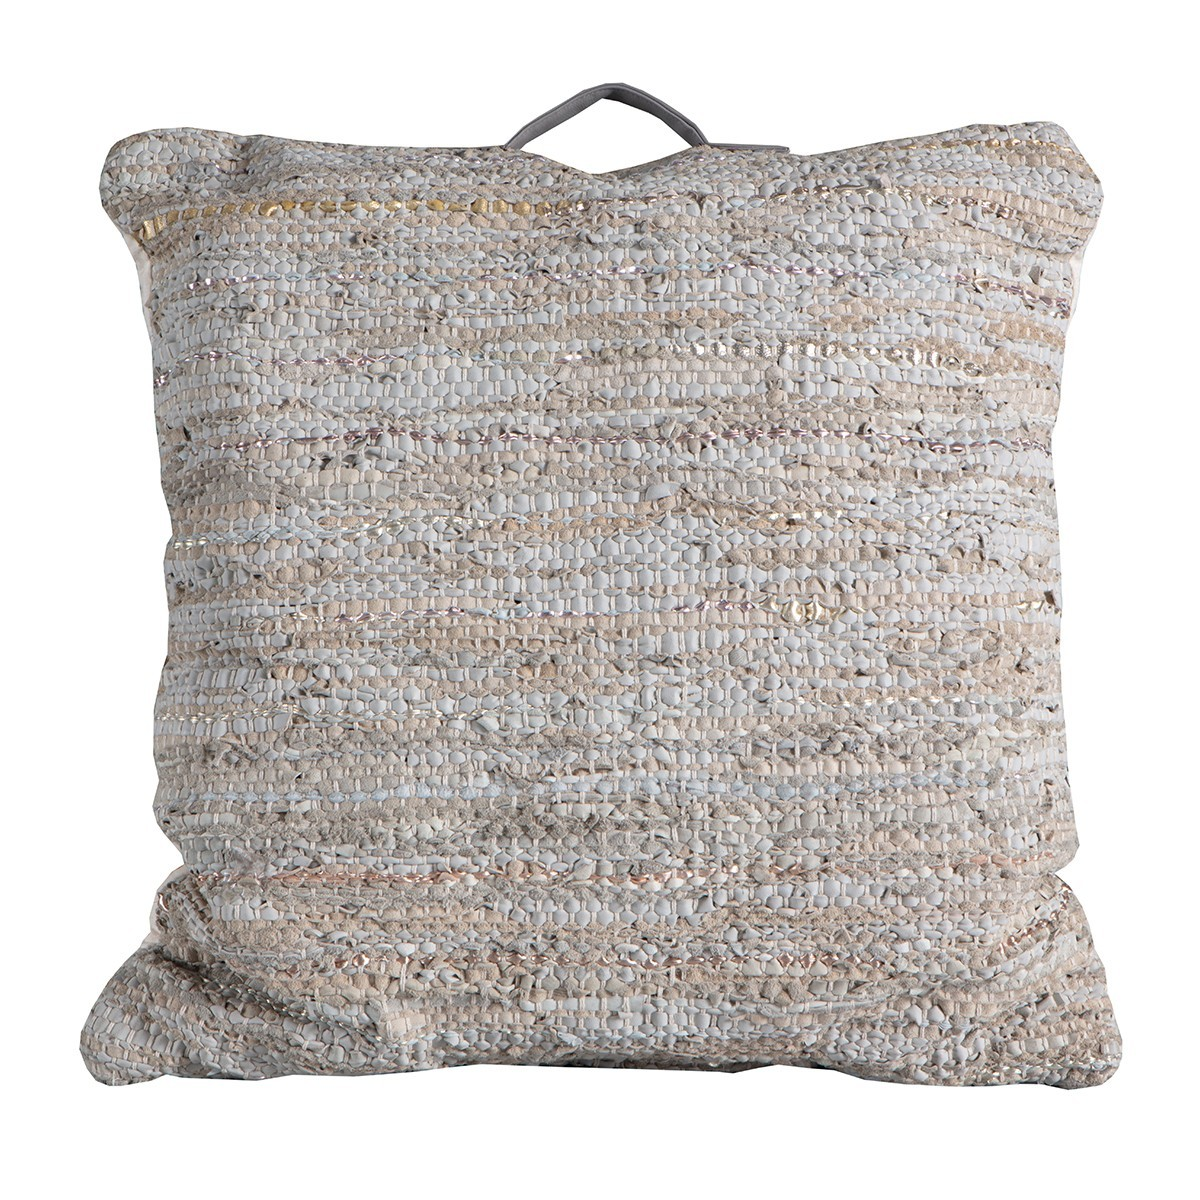 Pluto Braided Leather Floor Cushion, Cream / Grey